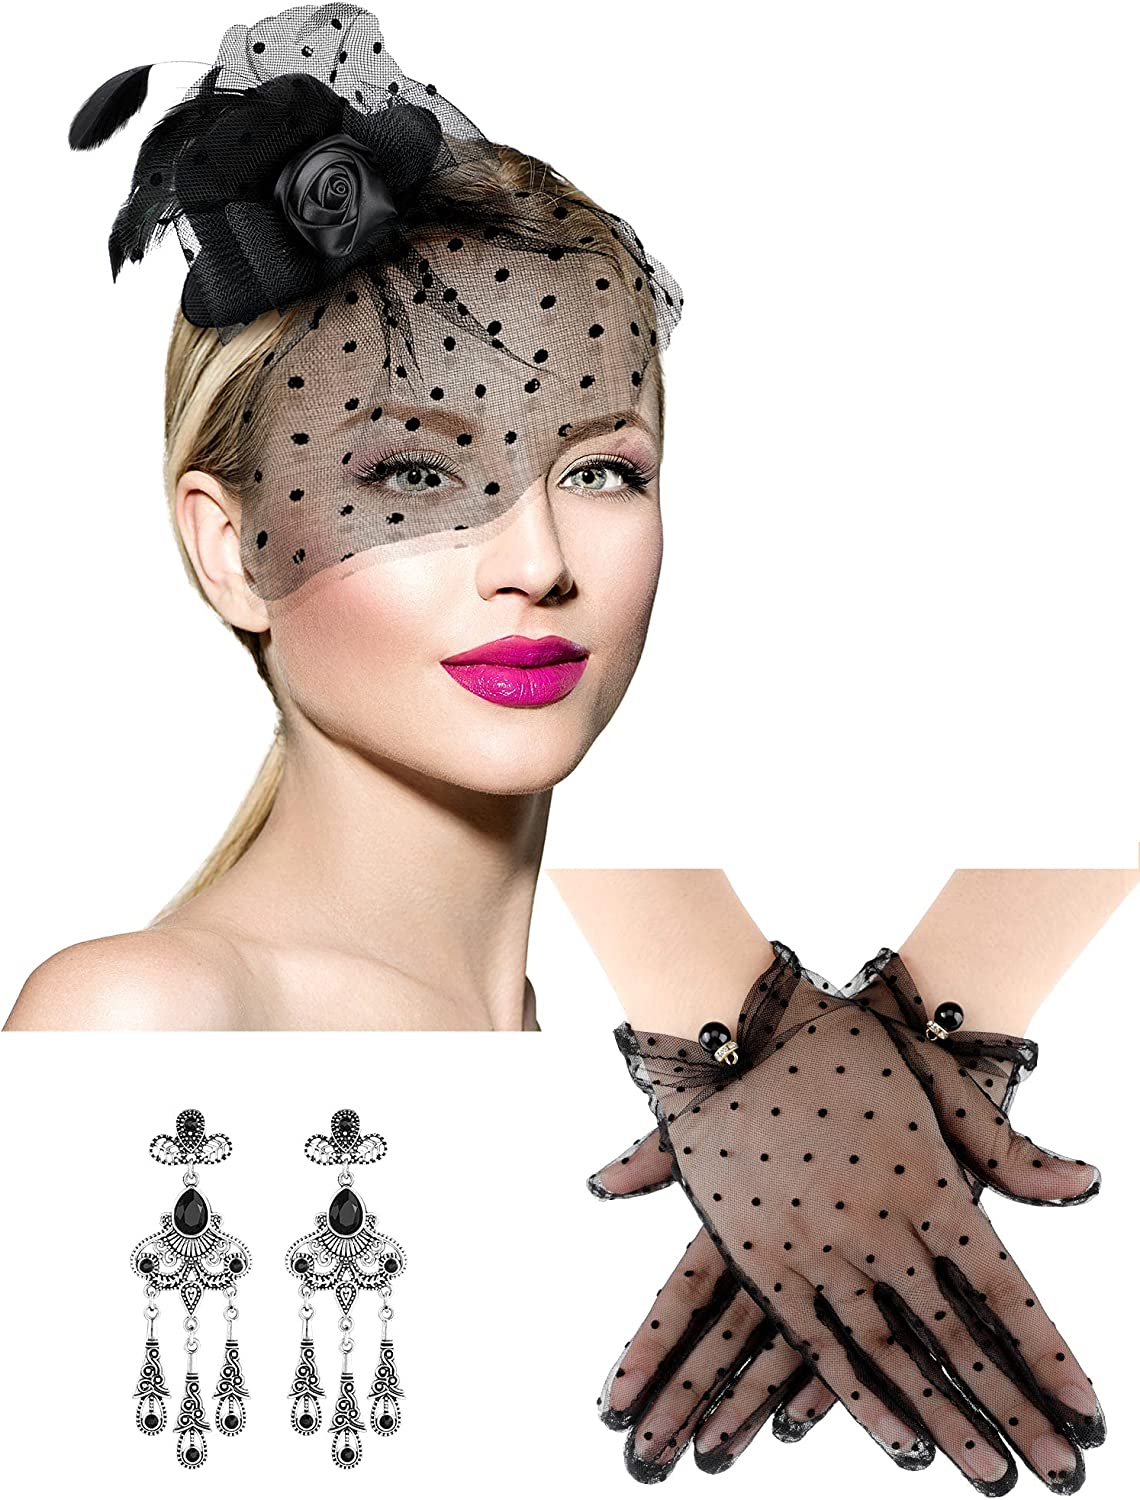 3 Pcs Fascinators Hat Flower Feathers Veil Mesh Tea Party Pillbox Hat Retro Crystal Earrings Lace Mesh Dot Gloves Wedding Party Cocktail Halloween Cosplay for Women Girls